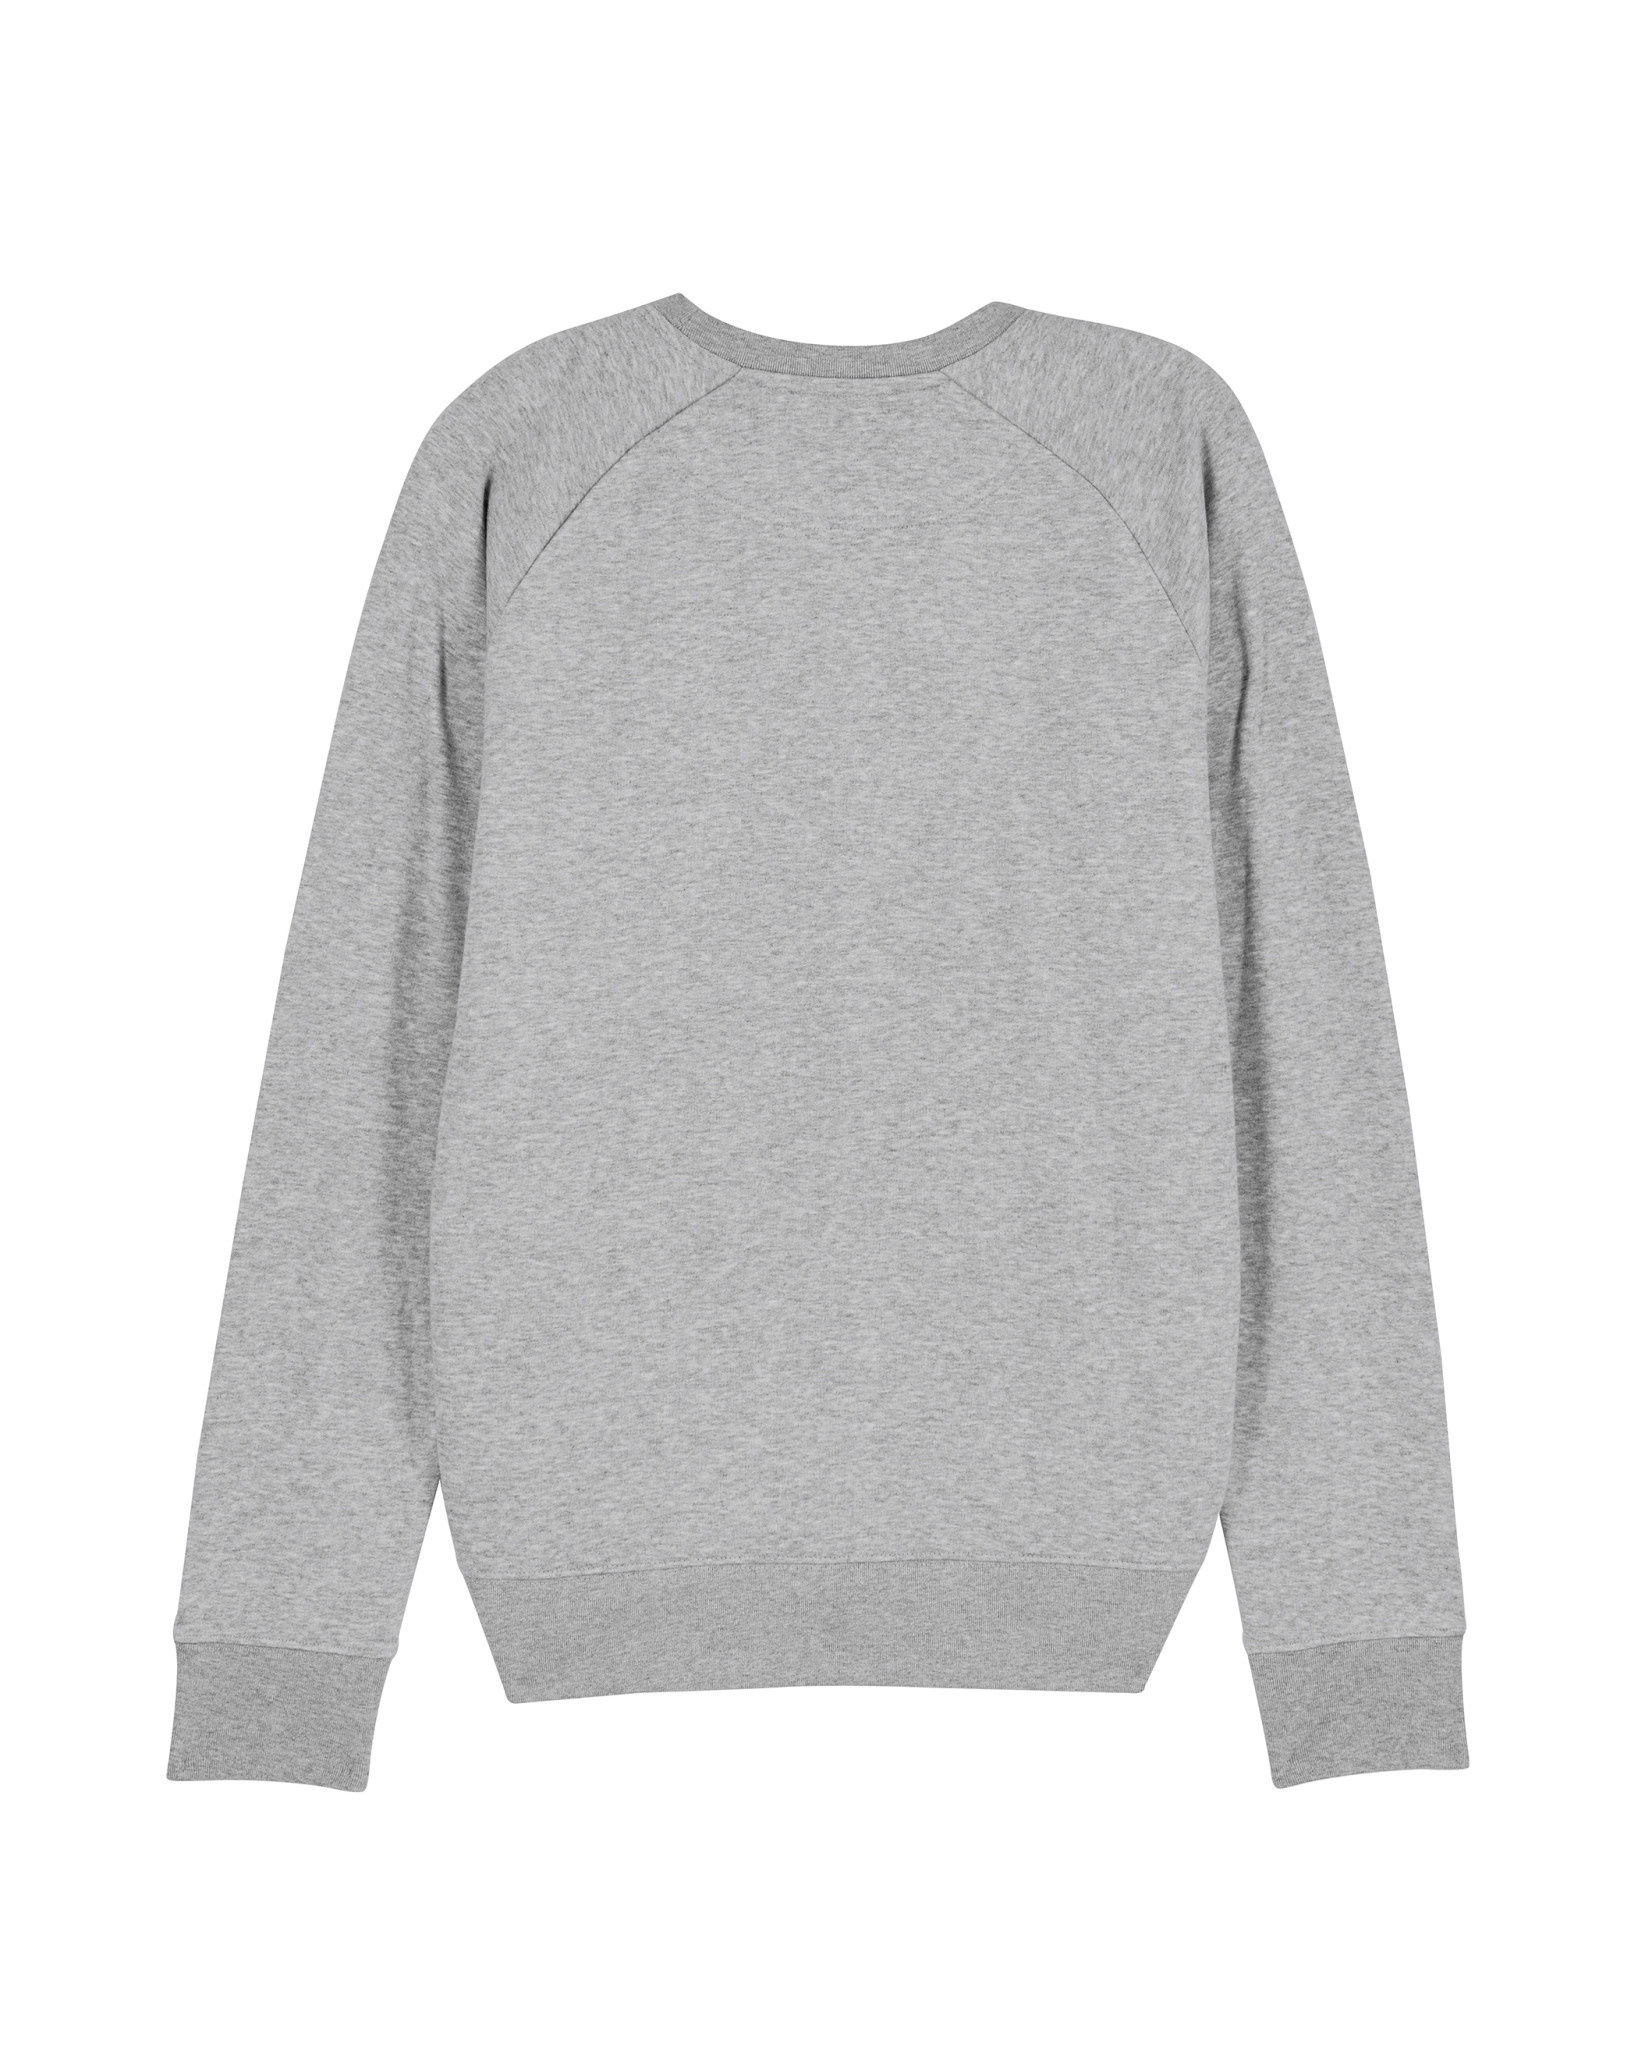 GOAT Apperal Goat Max Unisex Crew Neck Sweat Grey